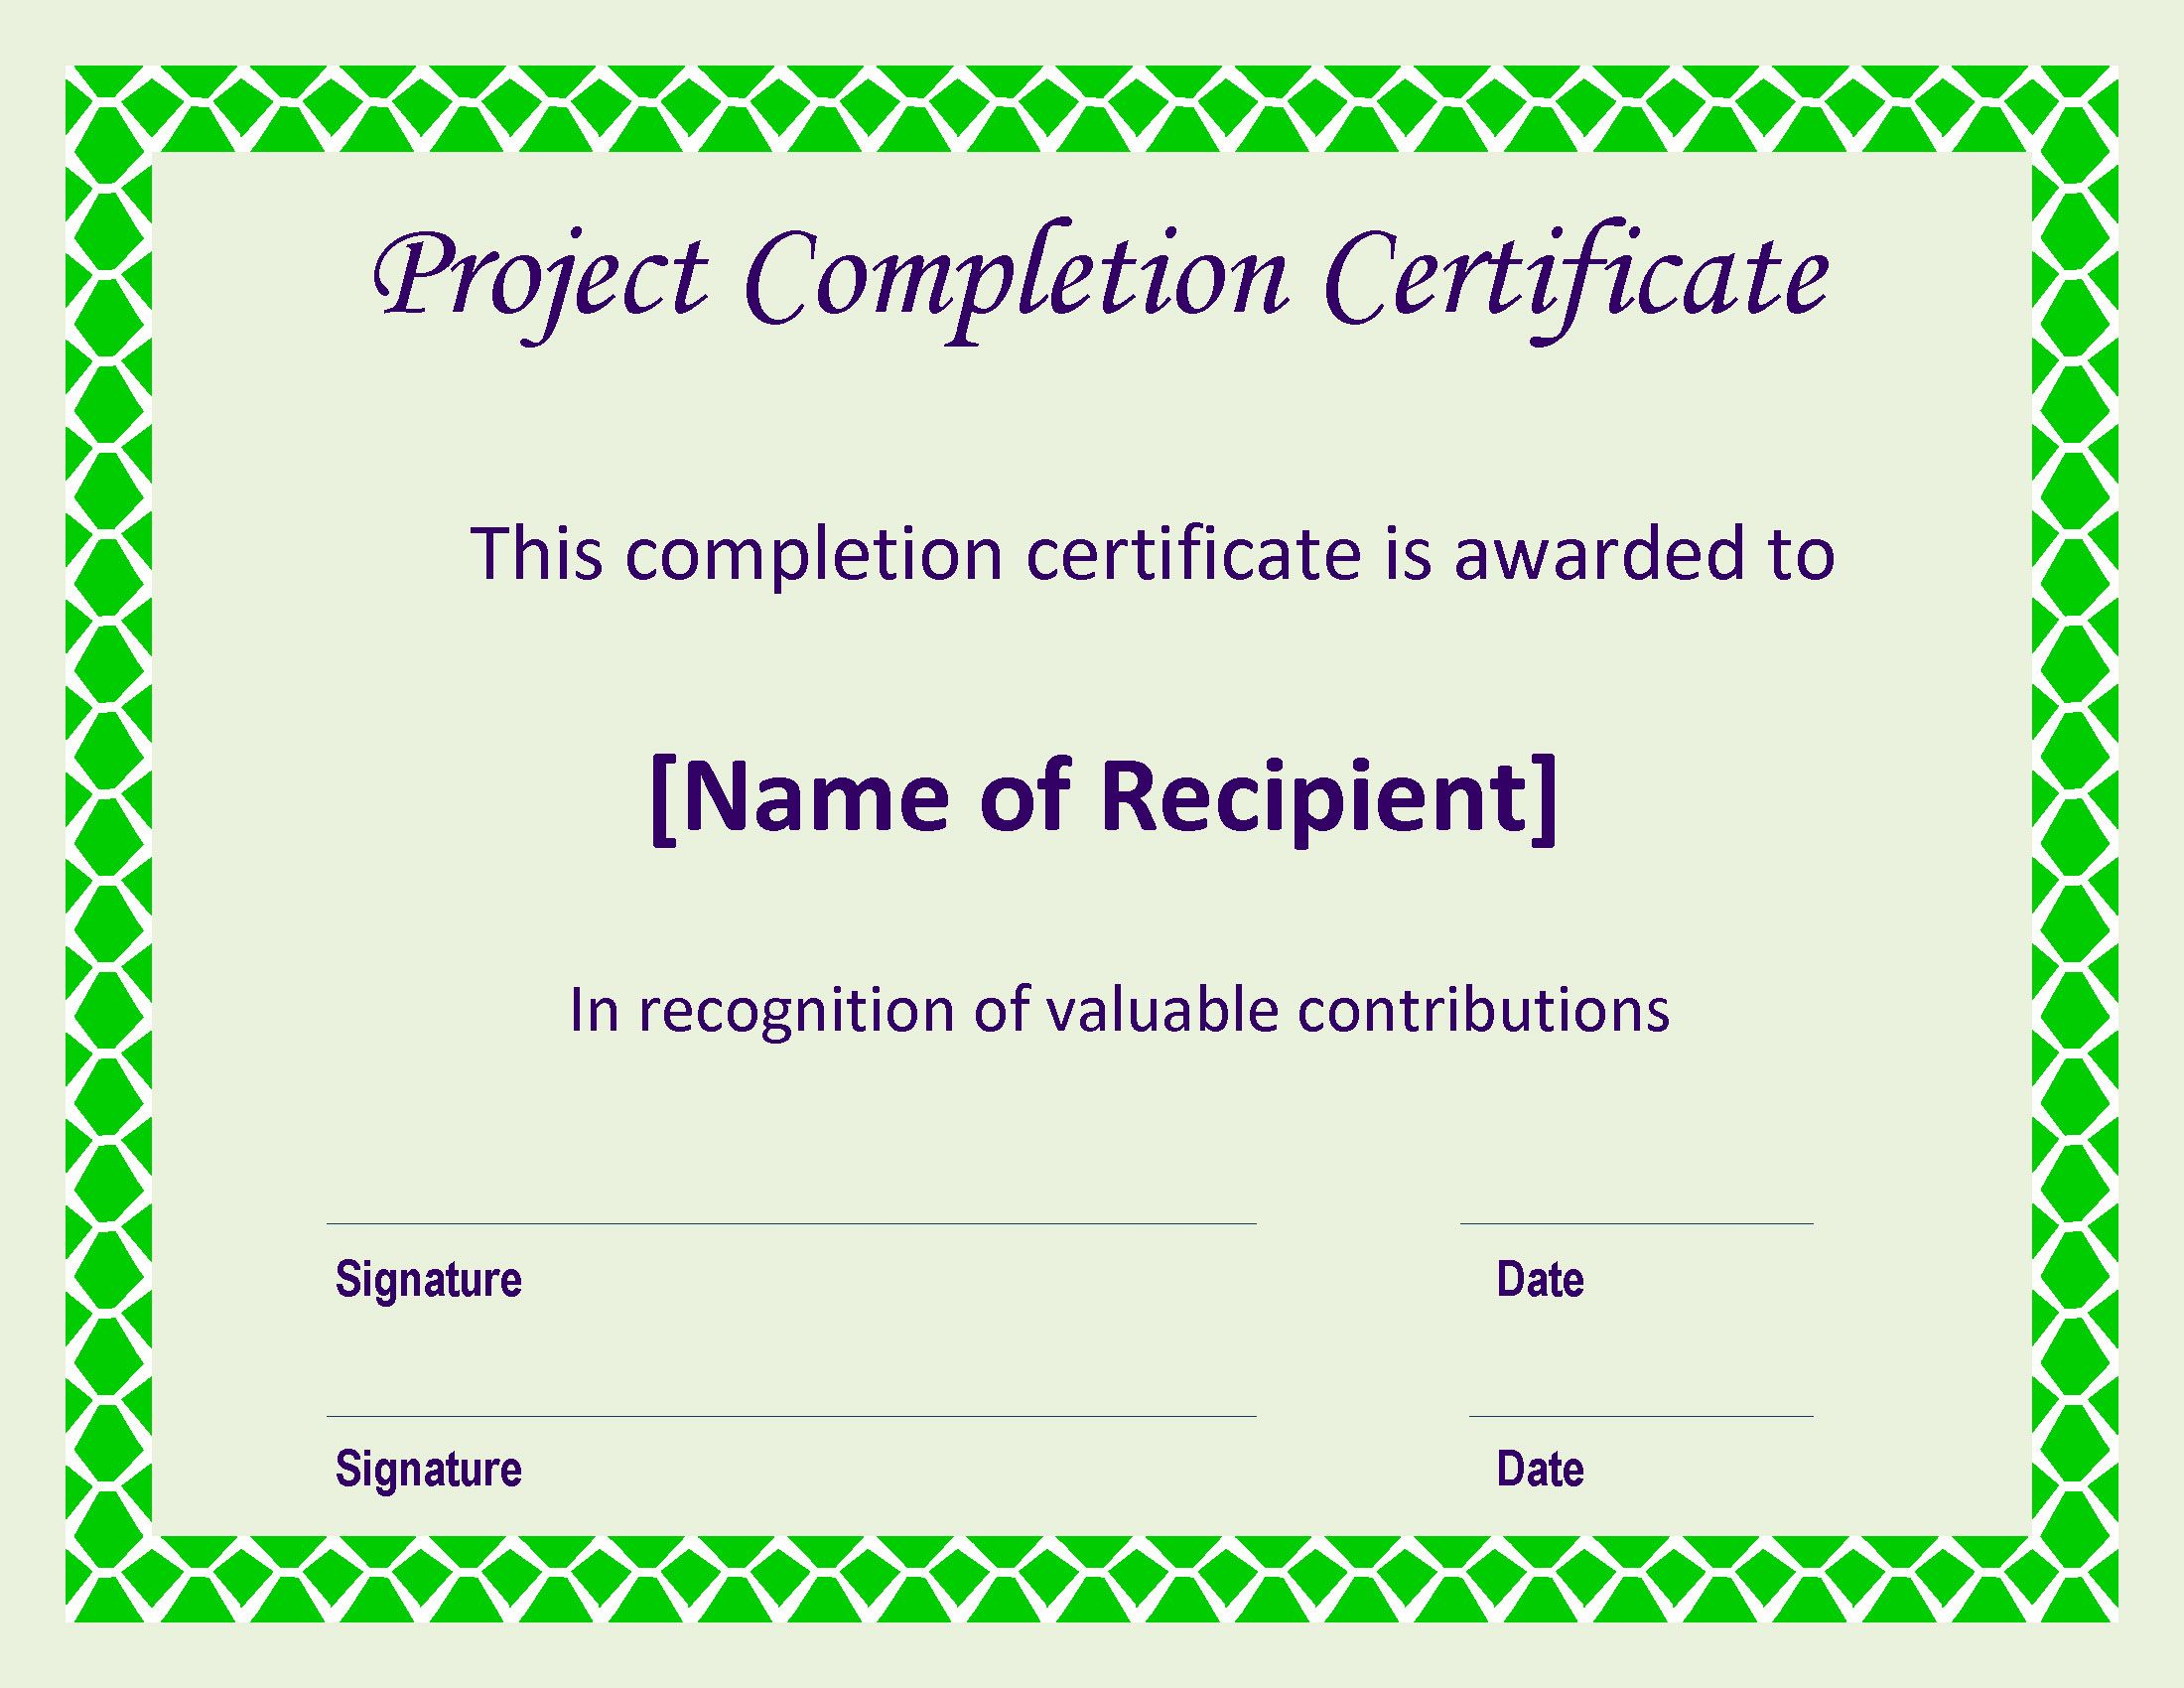 Free certificate of completion project templates at certificate of completion project main image download template xflitez Image collections